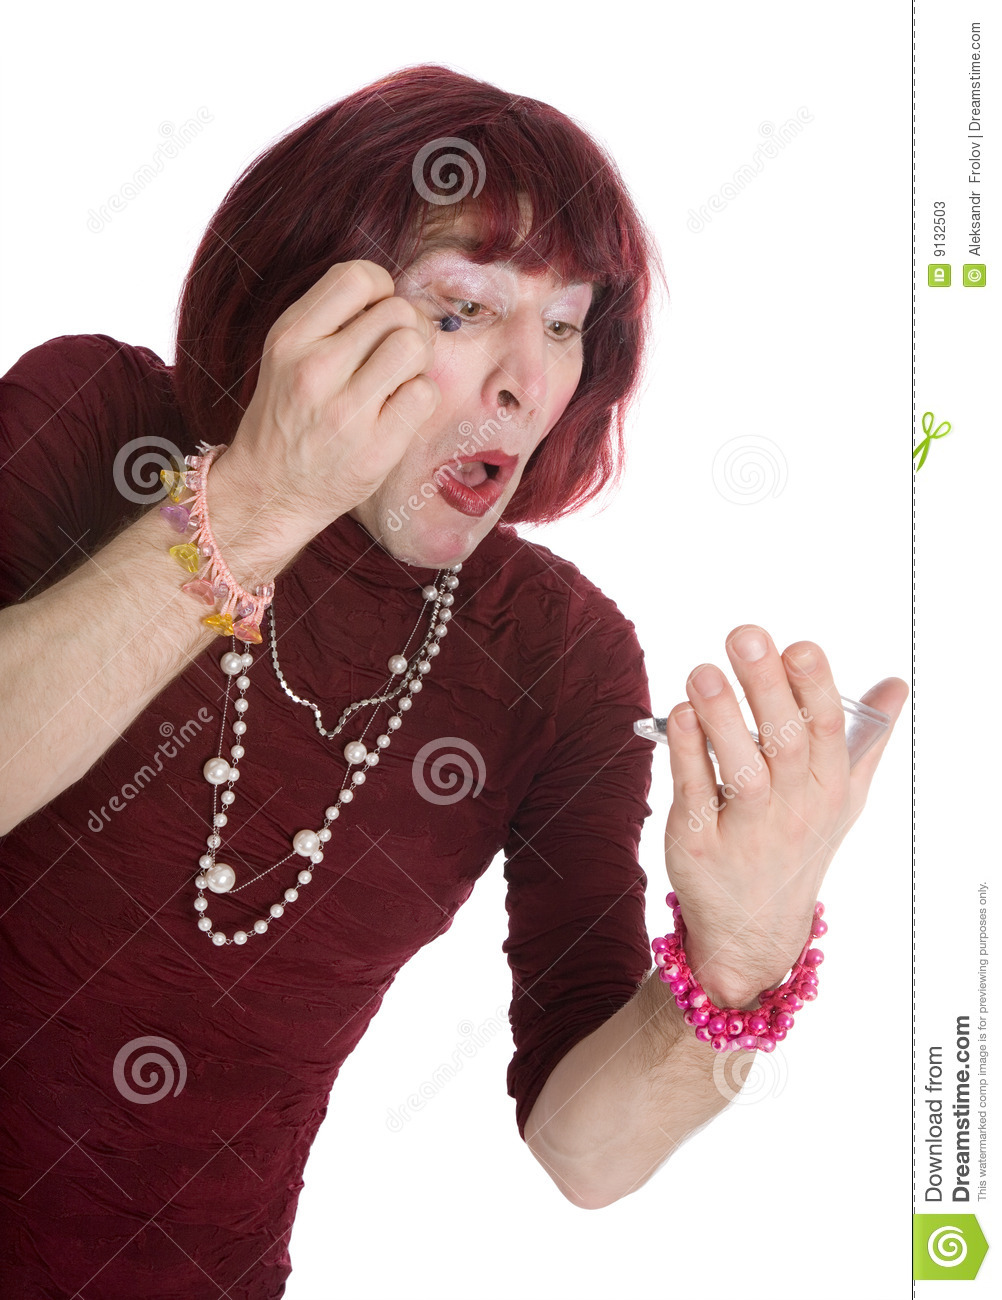 A Man Dressed As A Woman Stock Photos